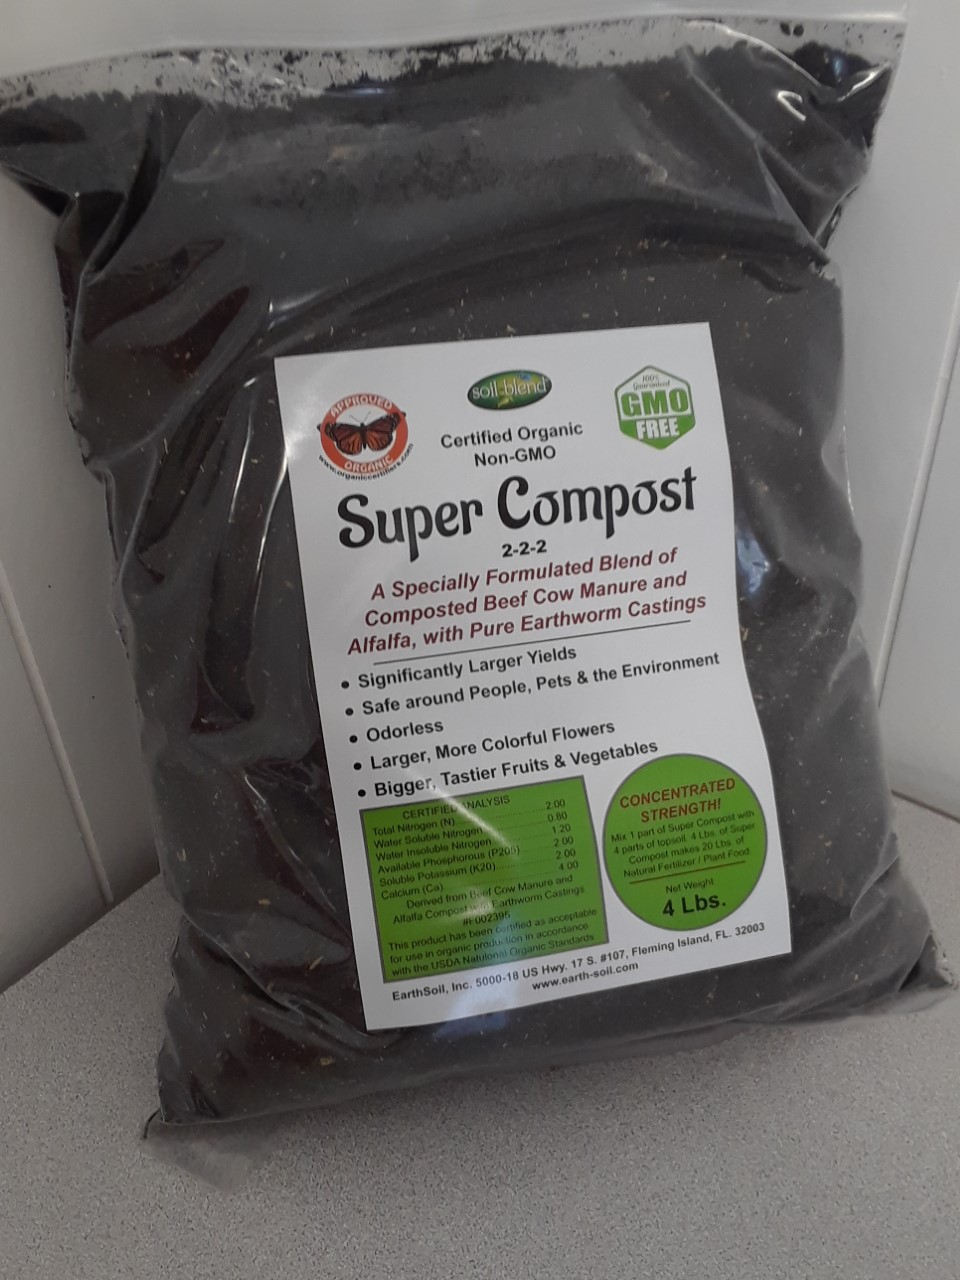 Super Compost Organic Fertilizer, Organic Plant Food, Specially Formulated blend of Worm... by EarthSoil, Inc.